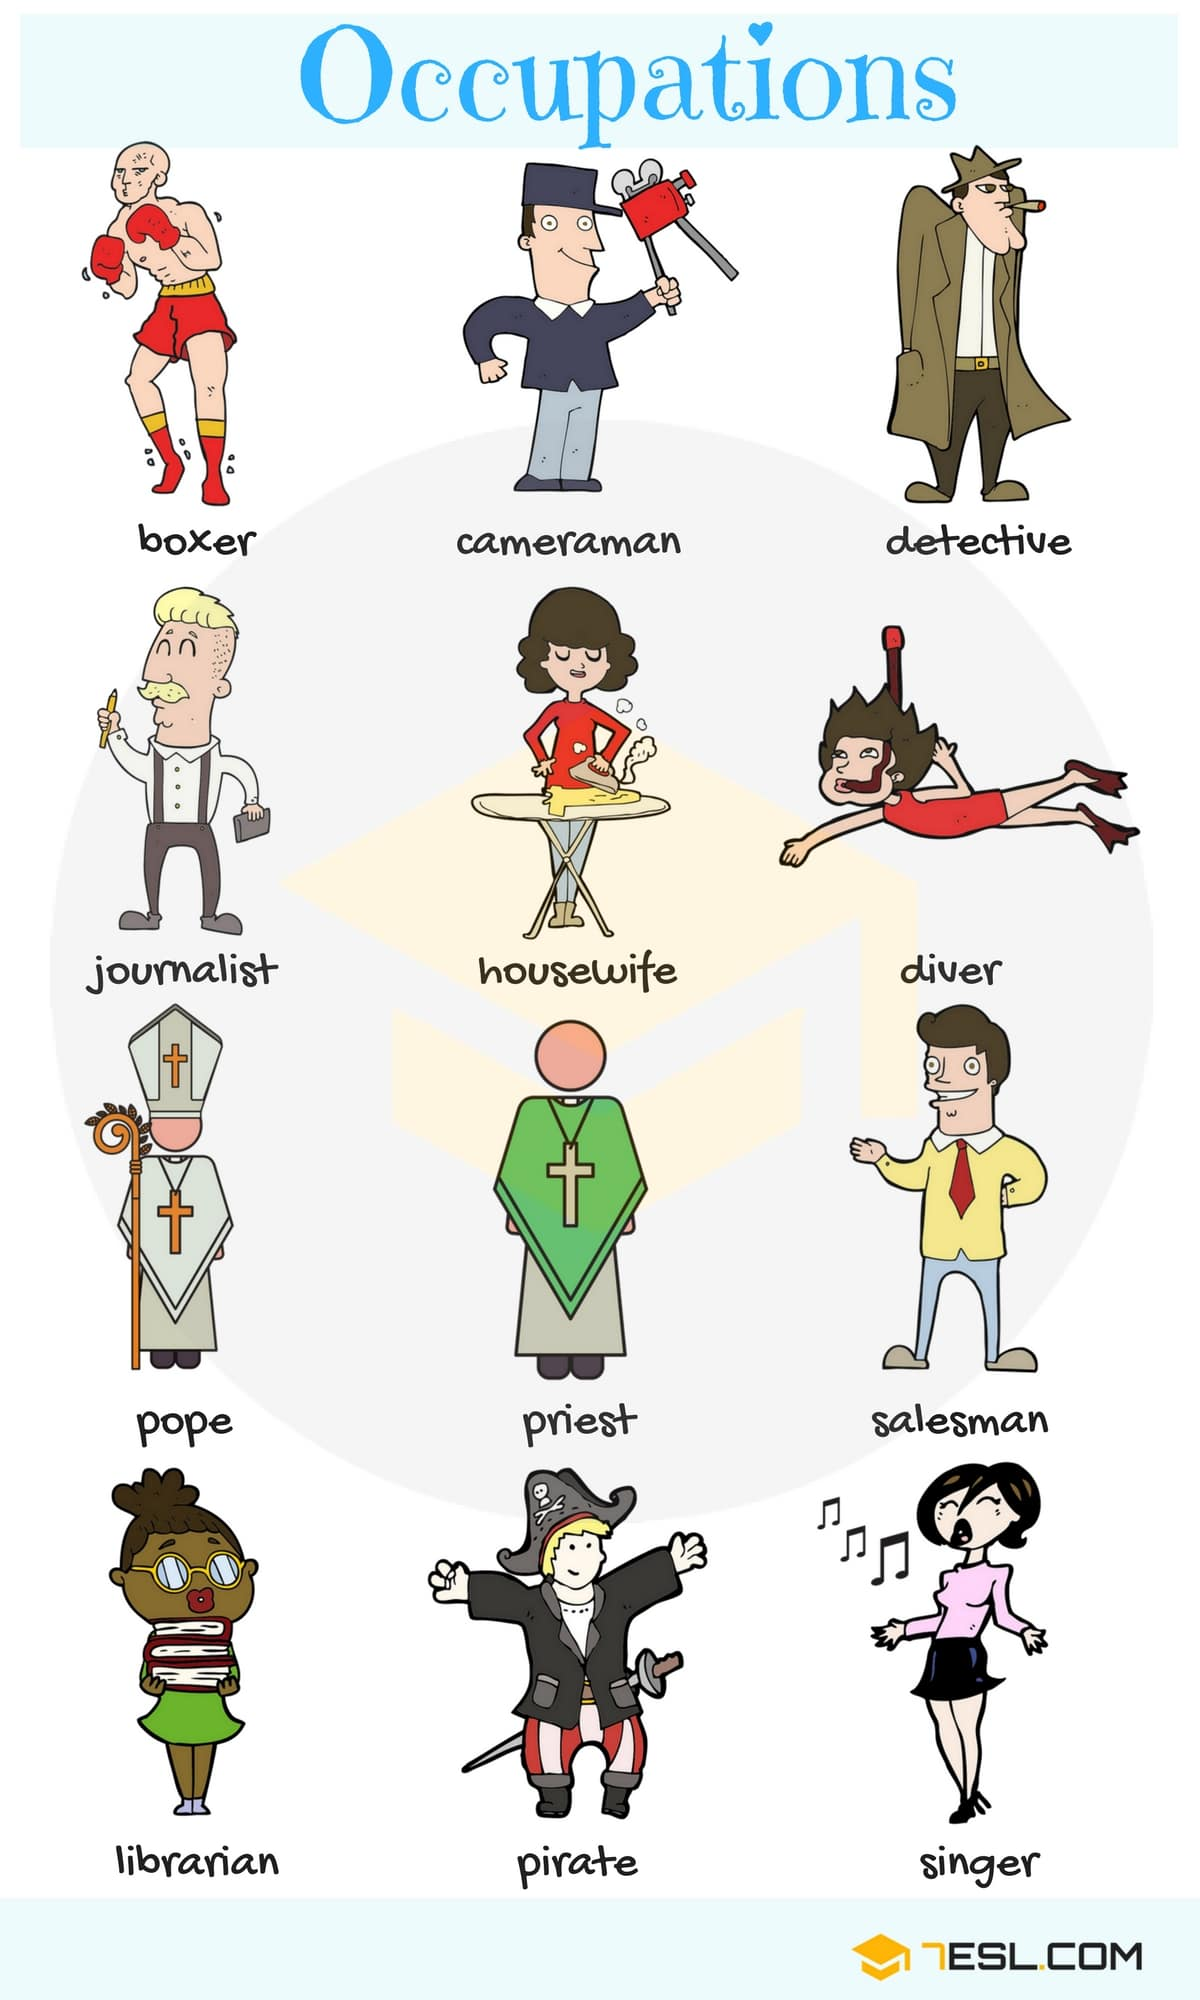 Learn Jobs And Occupations Vocabulary Through Pictures  Eslbuzz Learning English